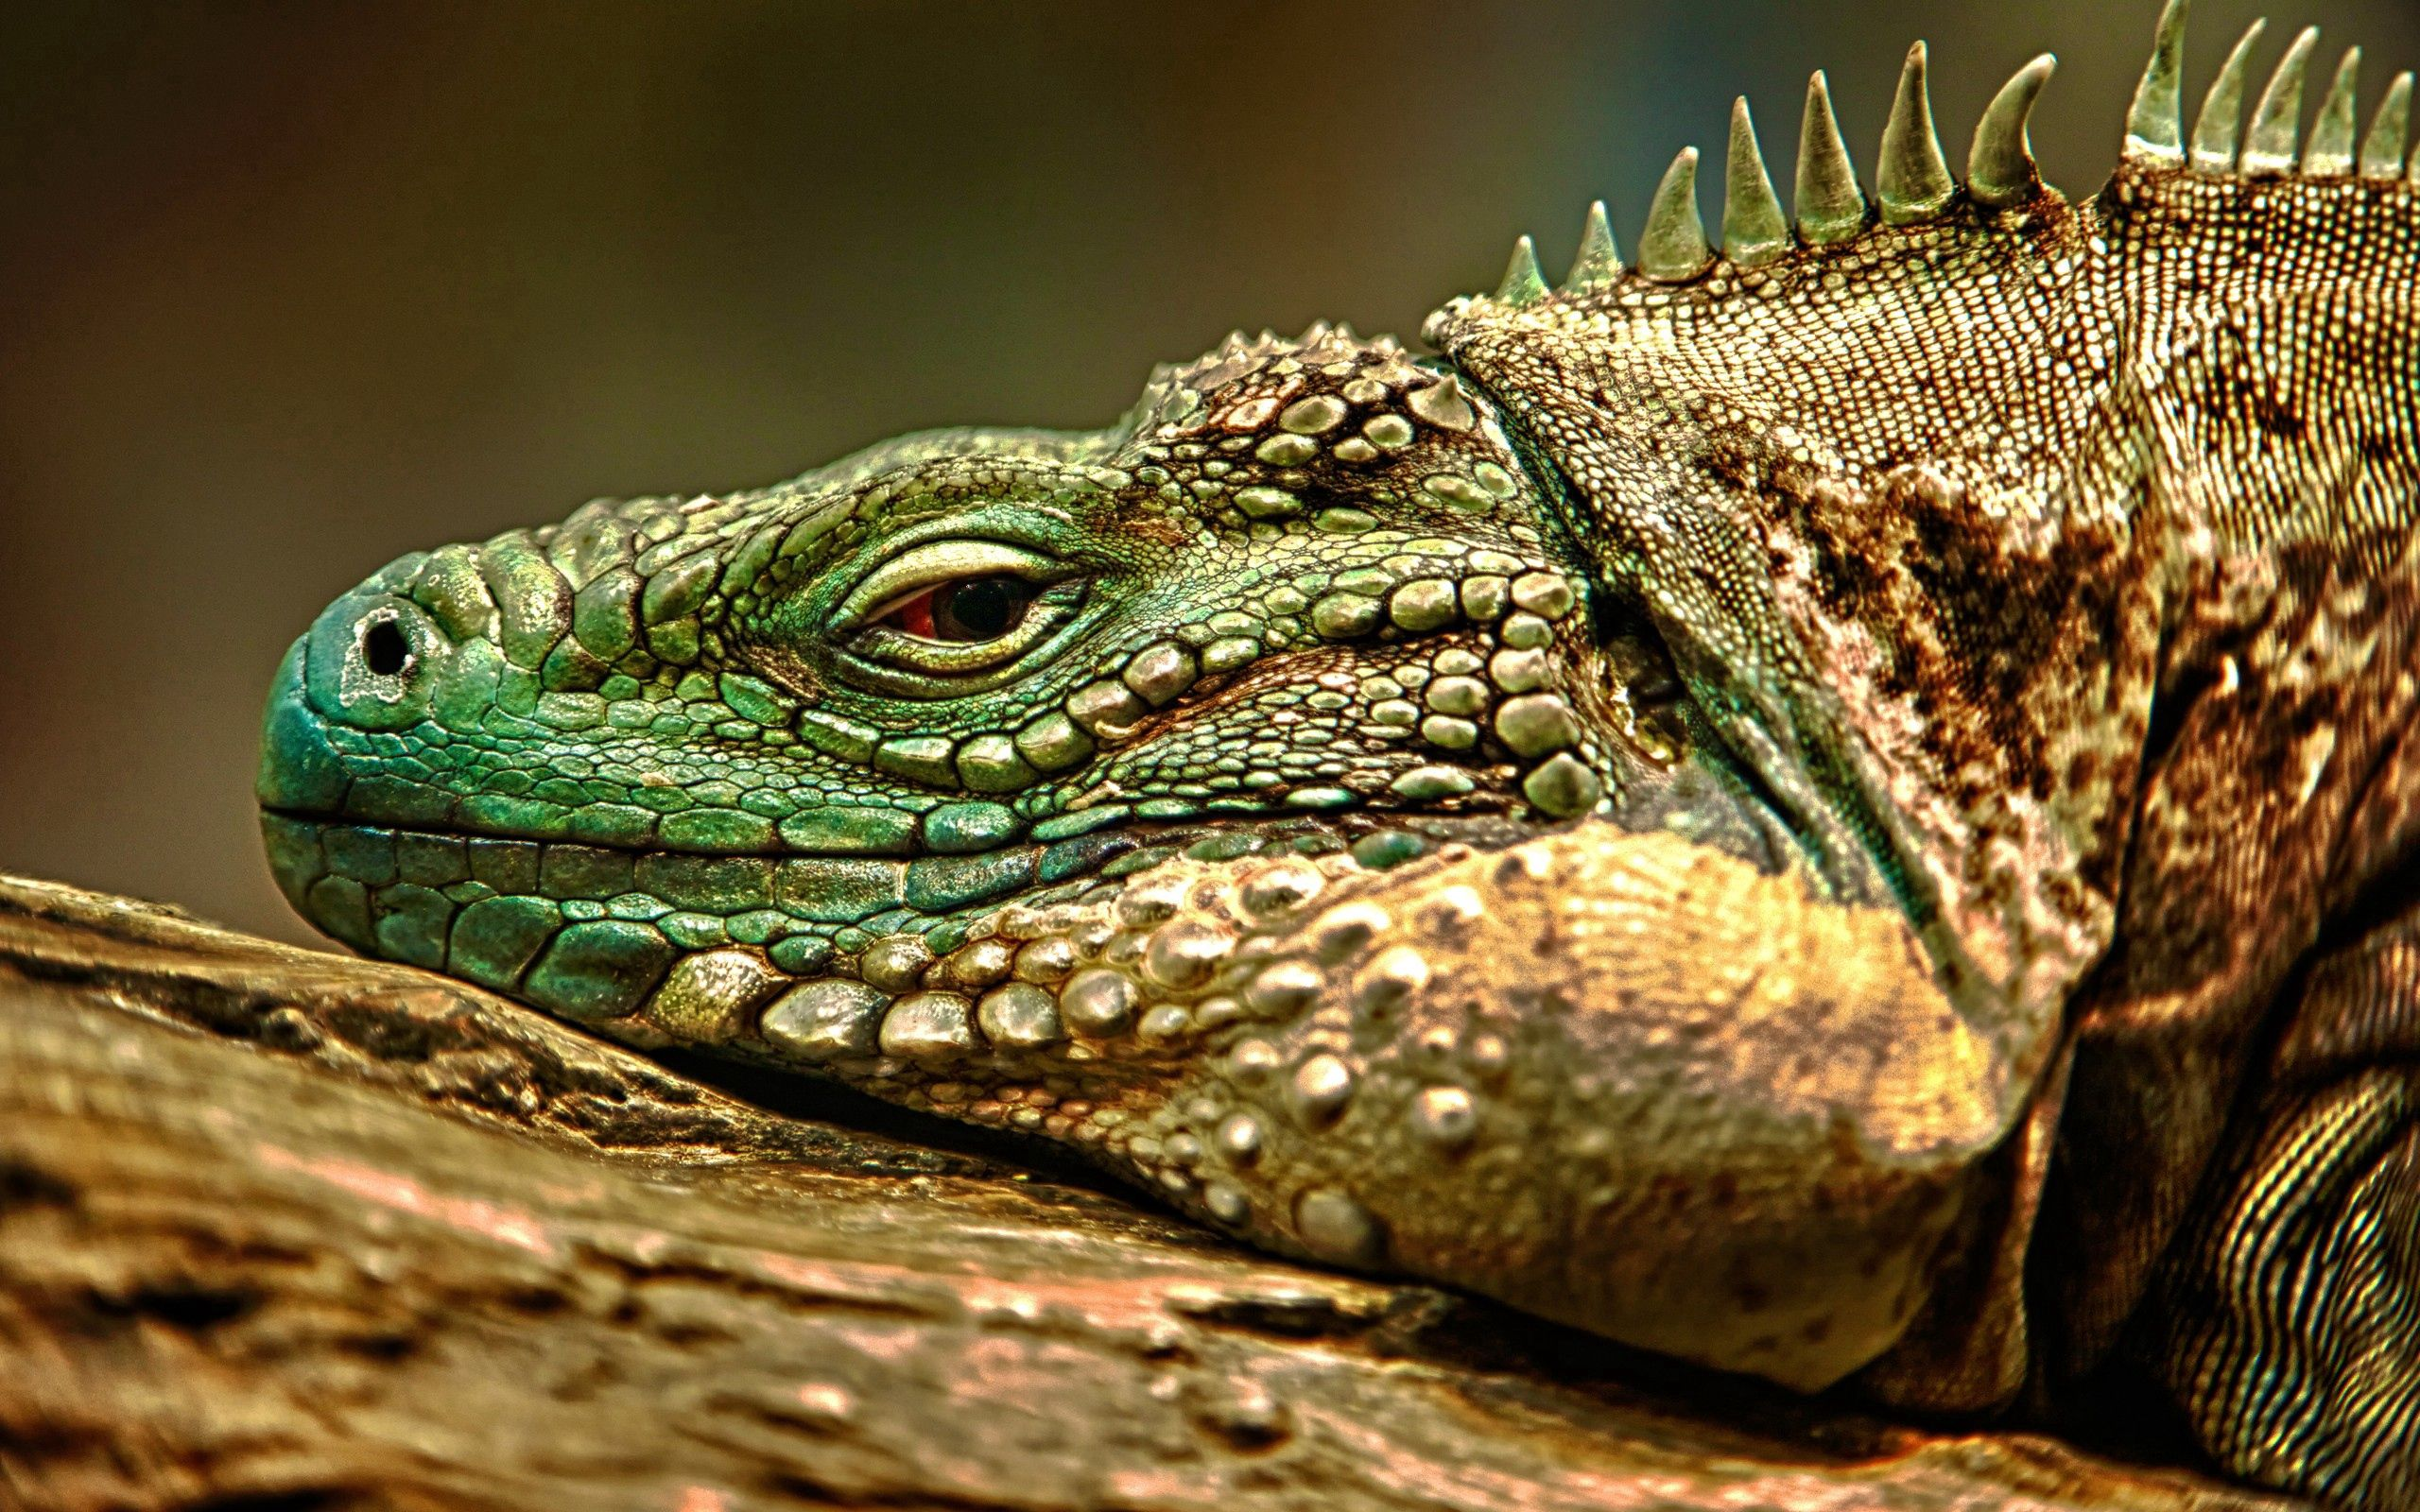 105968 download wallpaper Animals, Iguana, Reptile, Muzzle, Dangerous screensavers and pictures for free